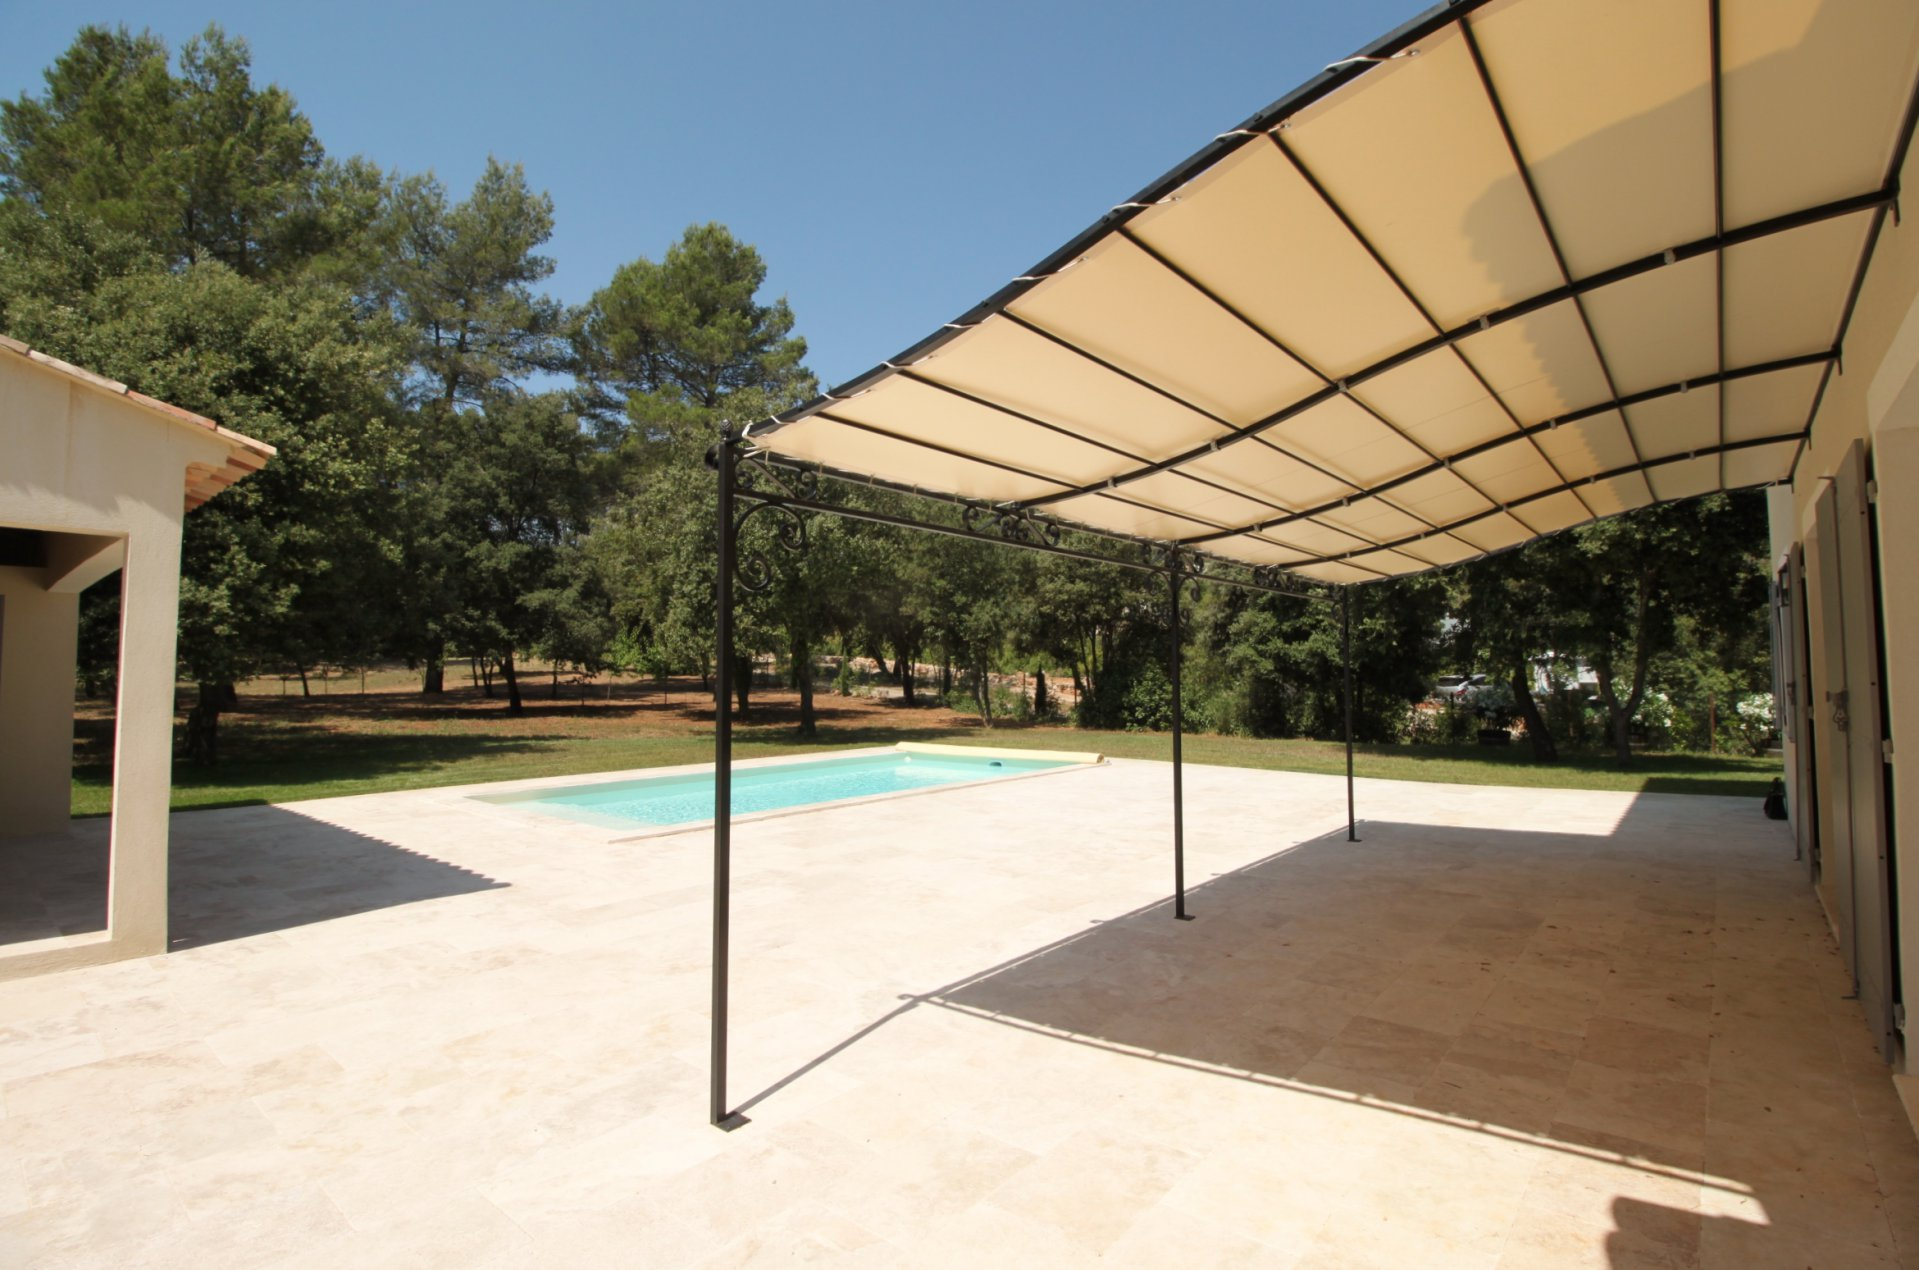 Brandnew bastide with quality and charm